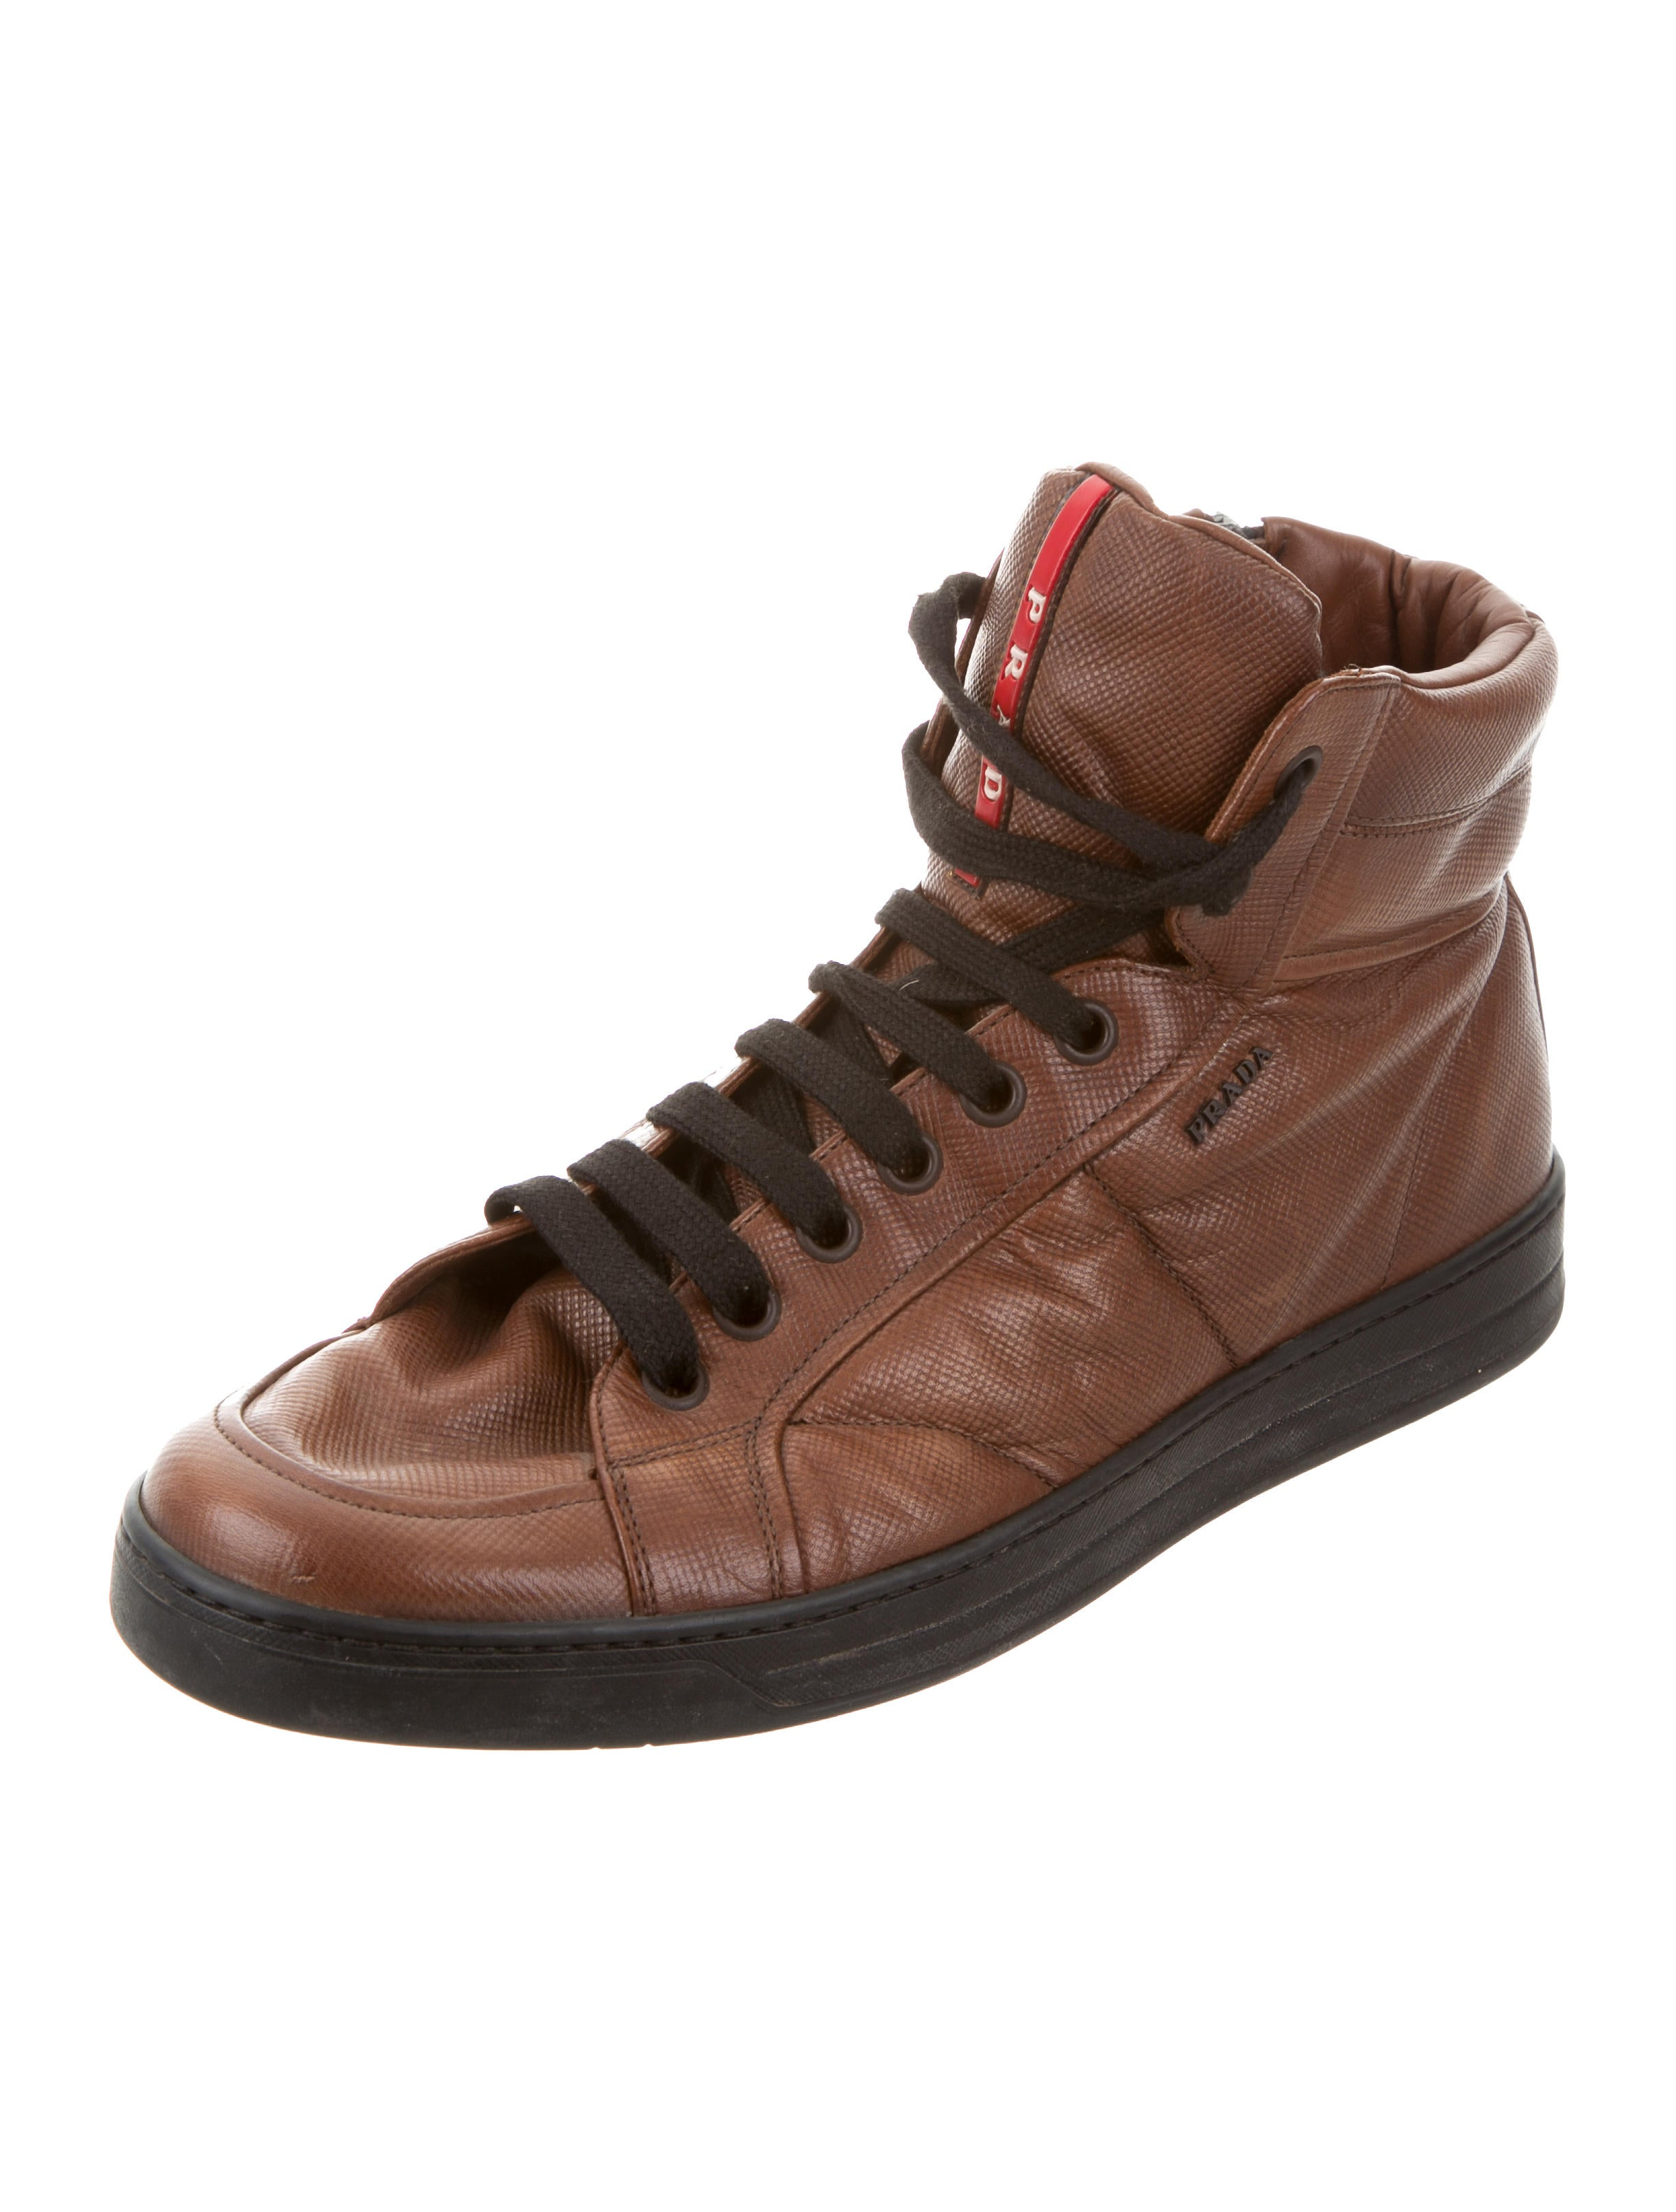 prada sport leather high top sneakers shoes wpr39803